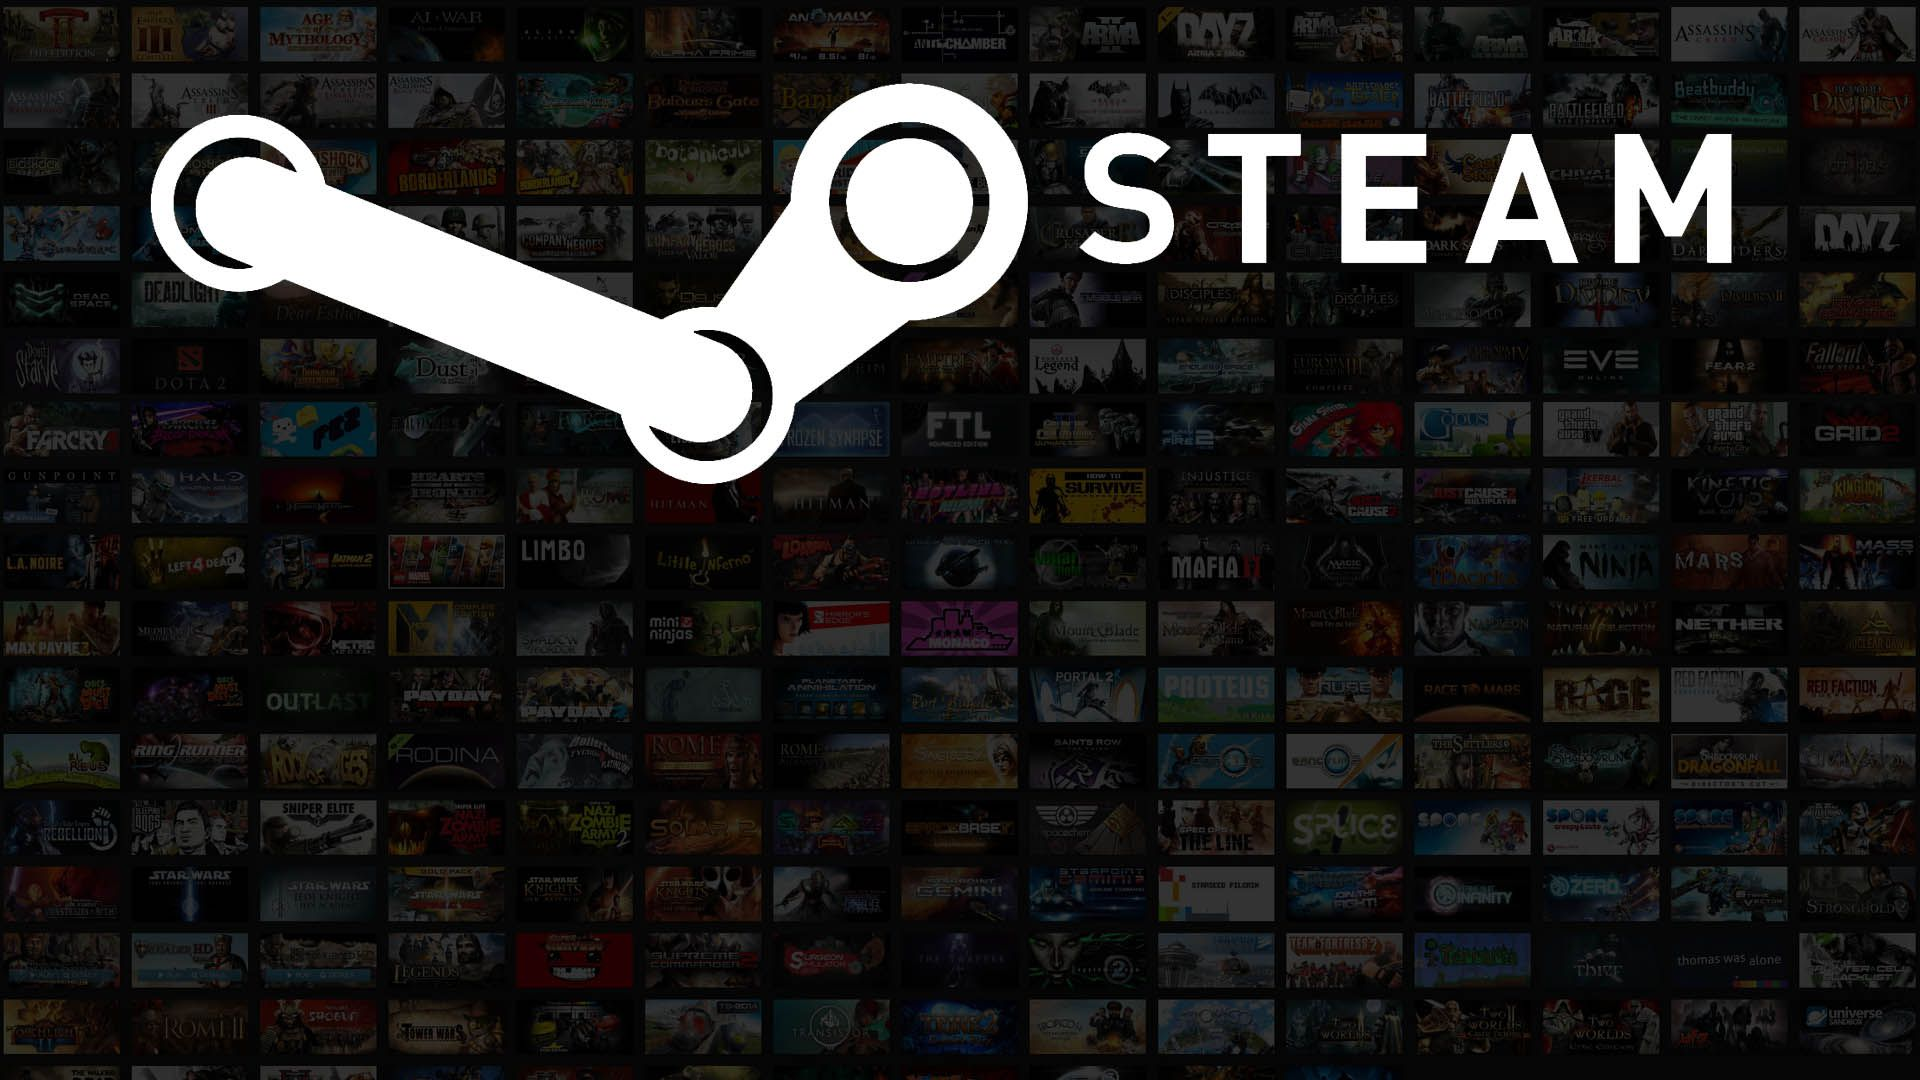 buy-steam-100-tl-wallpaper.jpg